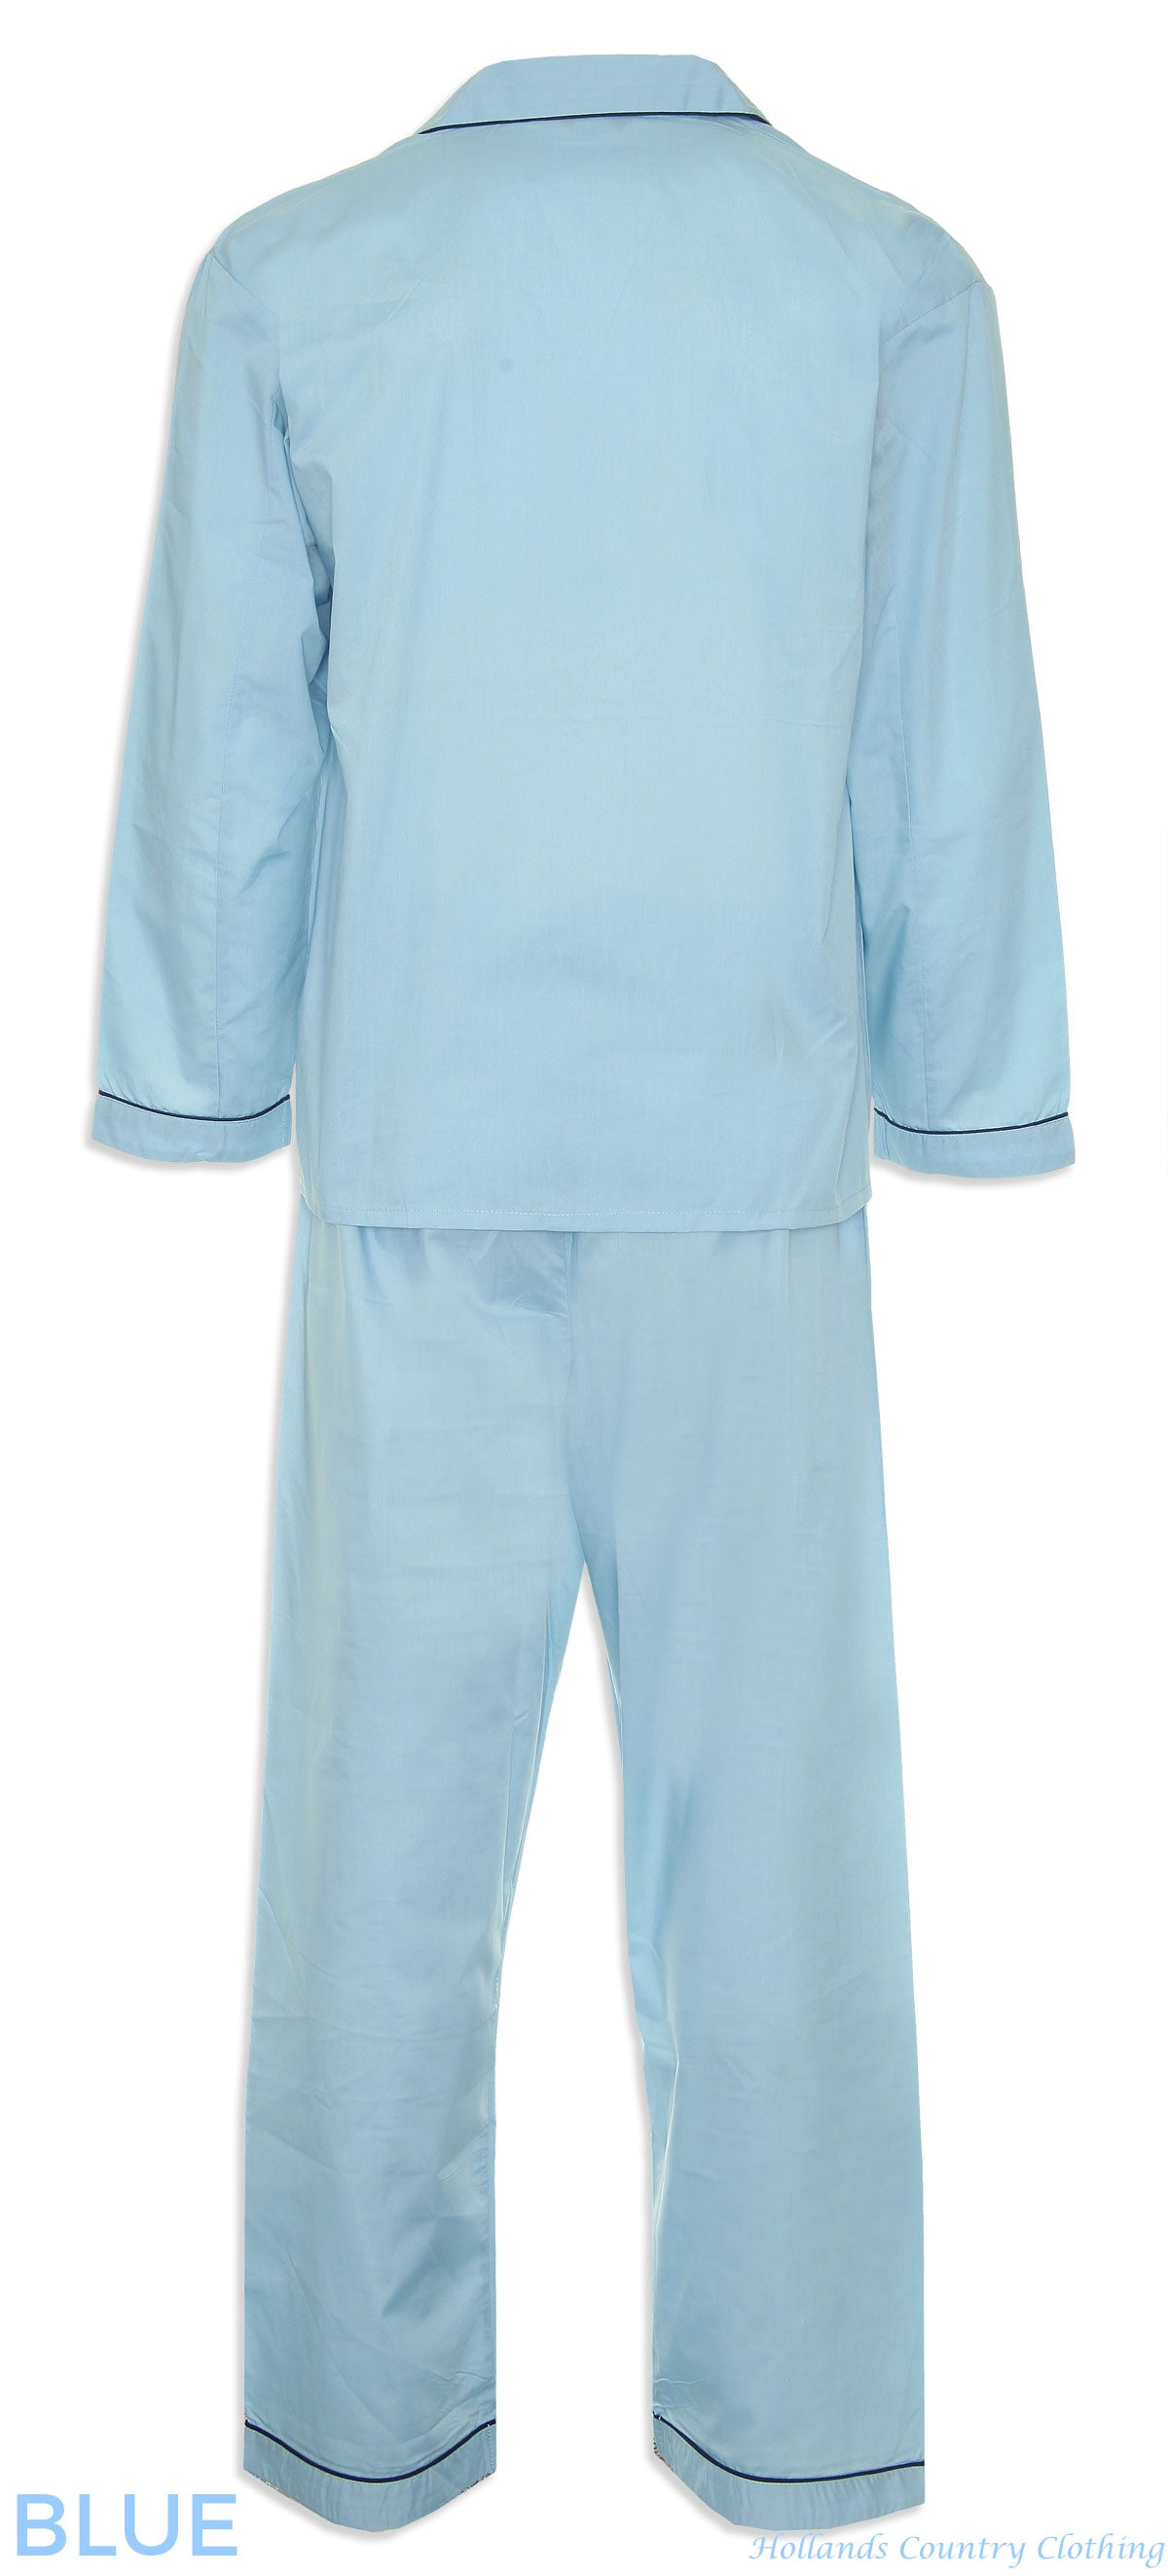 Champion Classic Oxford Pyjamas men's champion nightwear